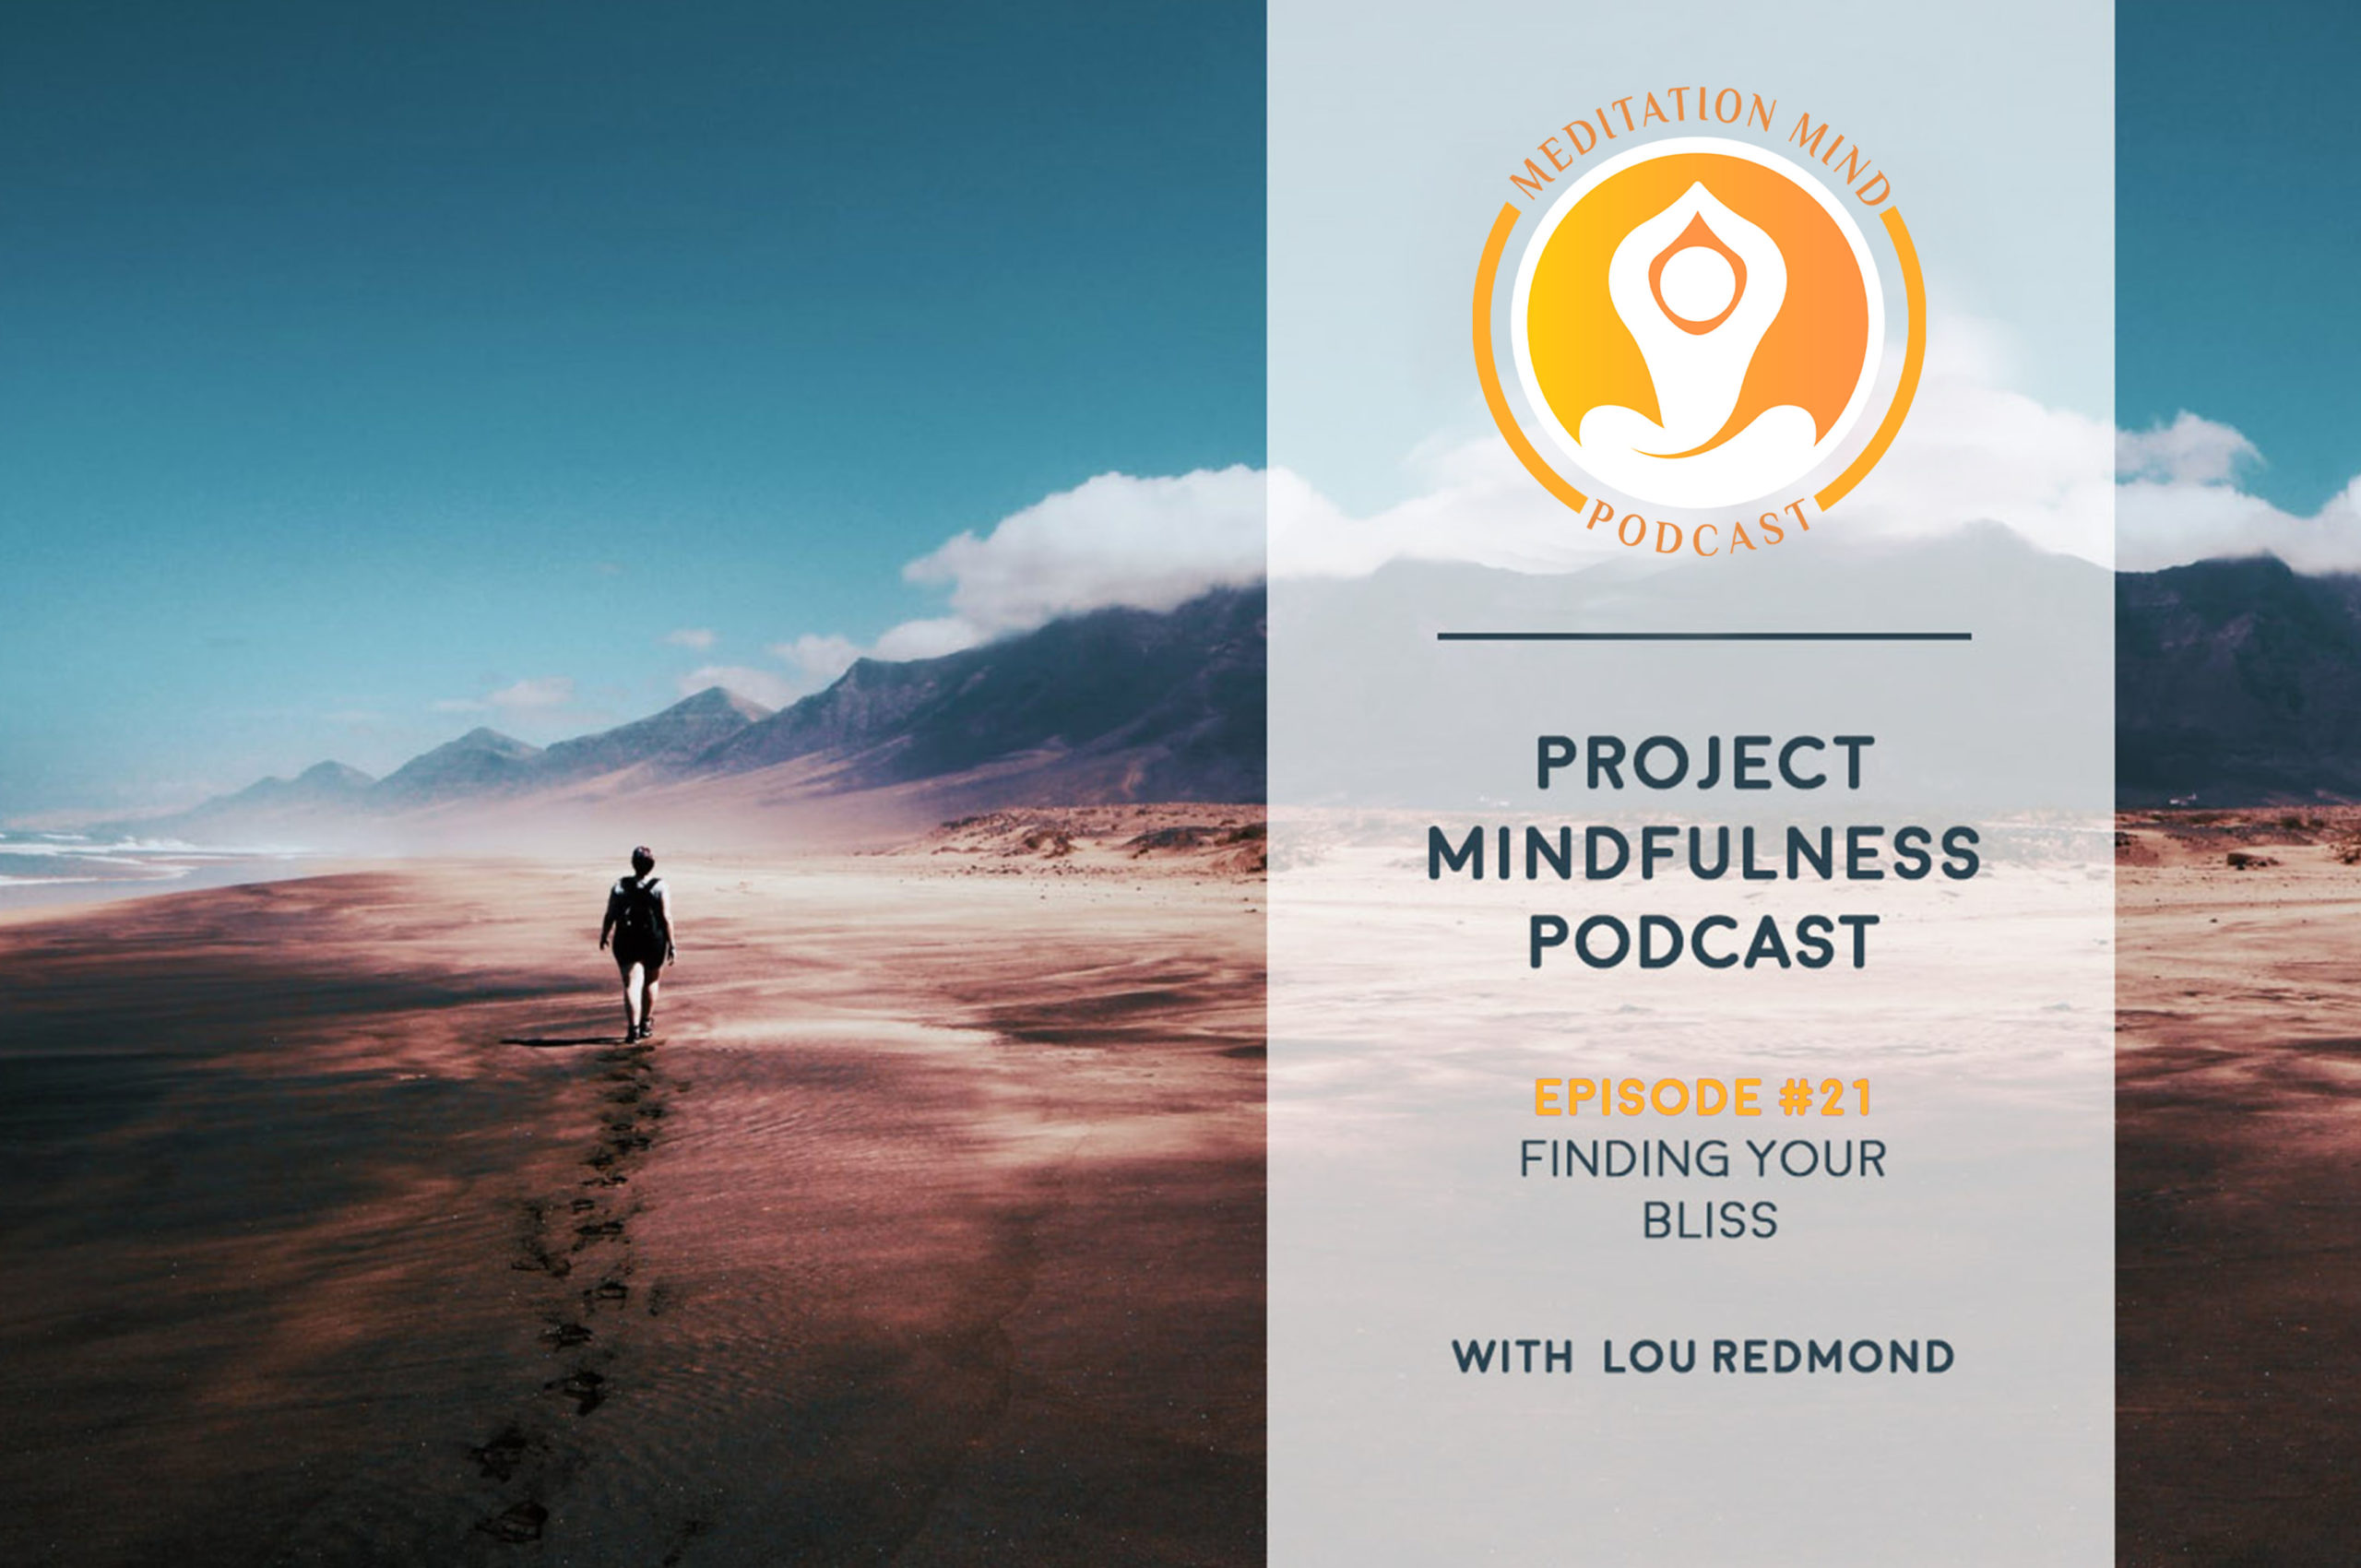 Learn more about finding your truth with Lou Redmond